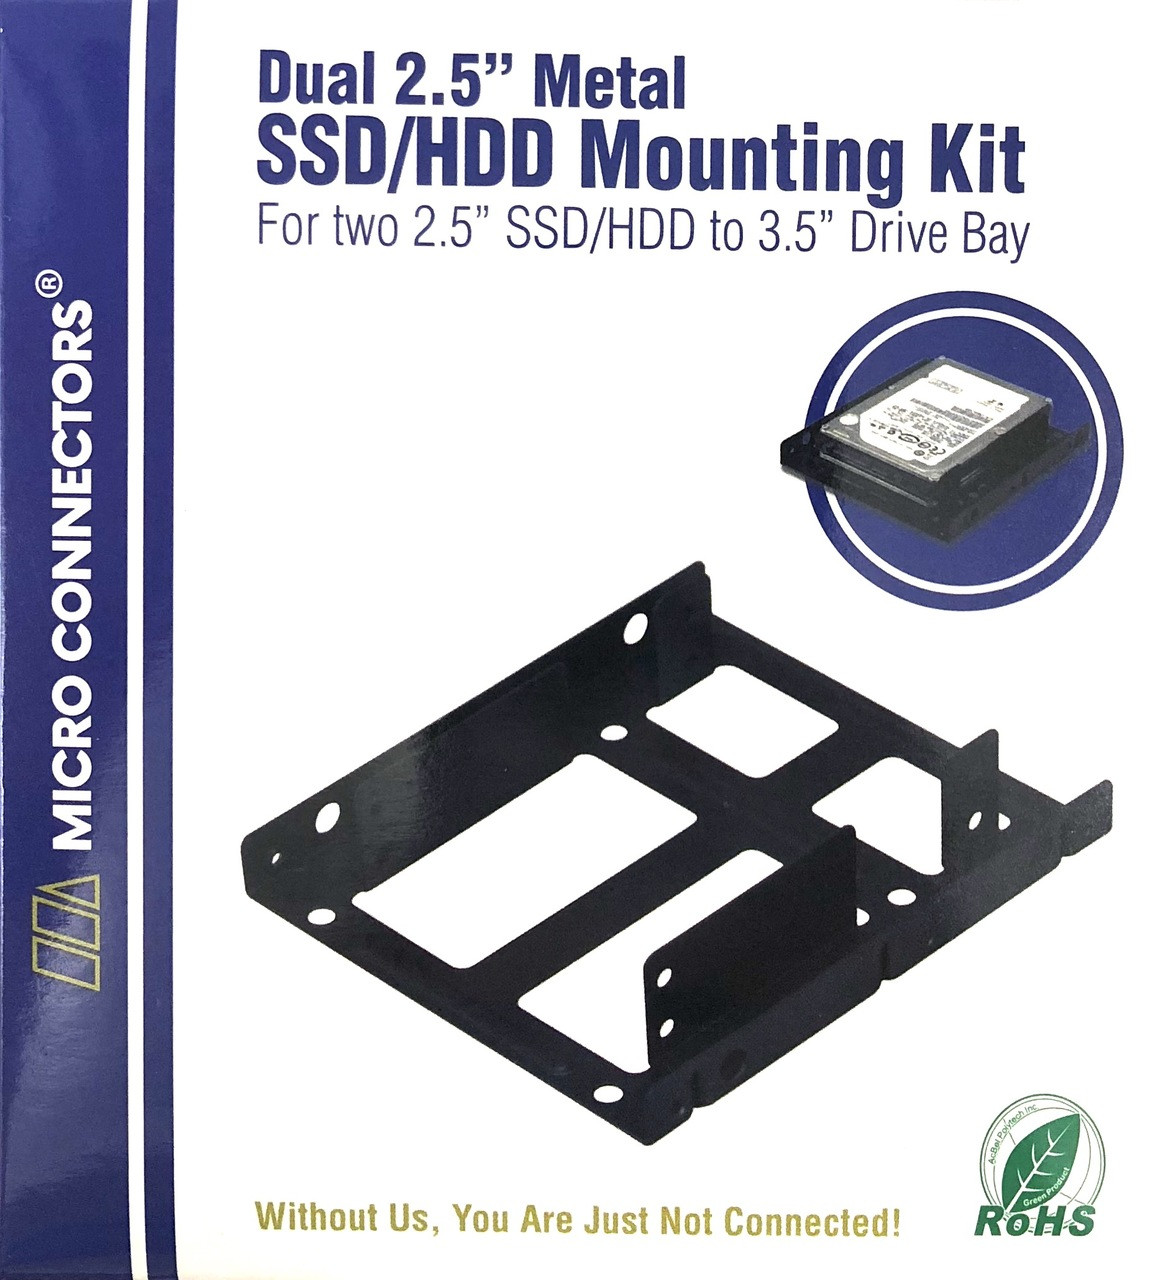 "Dual 2.5"" Metal HDD/SSD Mounting Bracket Kit (L02-35252)"